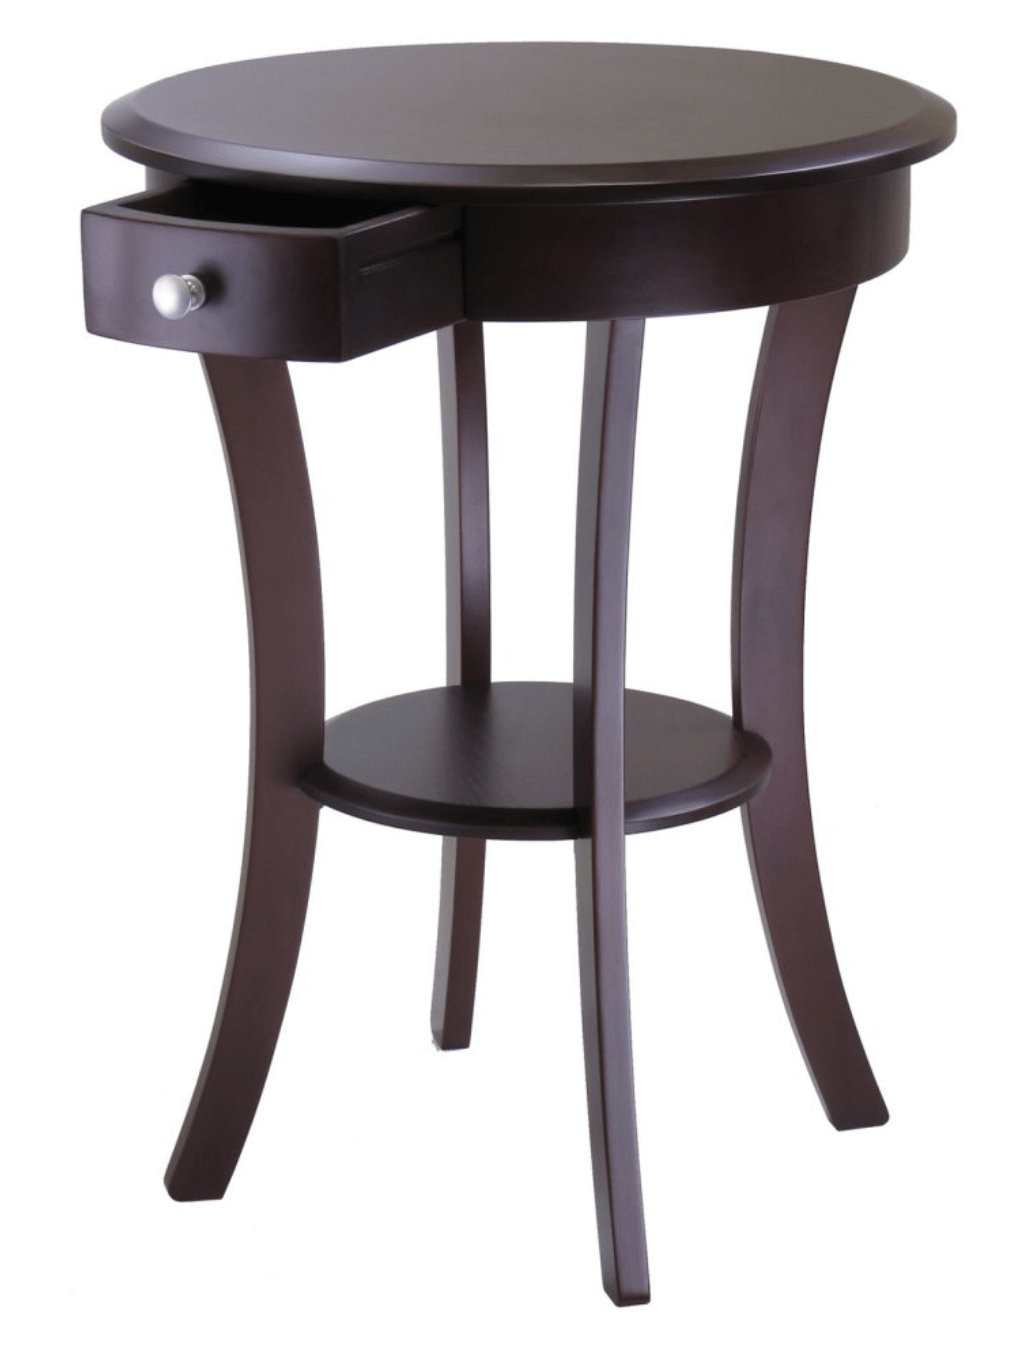 lovely small accent table for round wood min unique end tables contemporary the bedroom antique mirror coffee trestle dining set modern black lamp corner kitchen legs clear